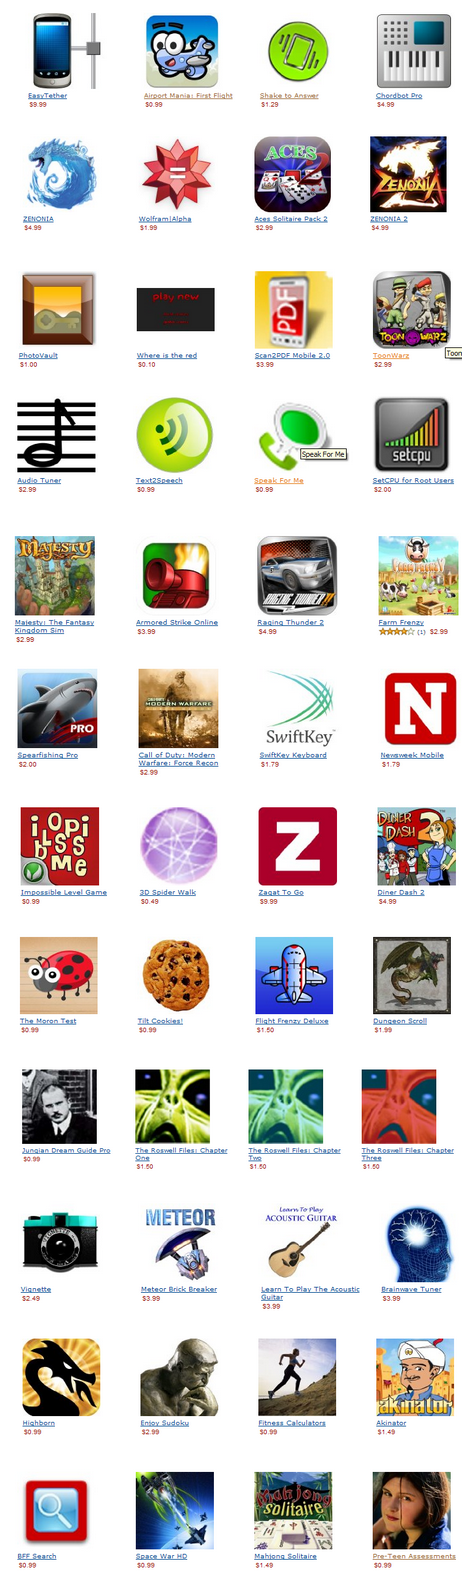 Amazon Appstore- Apps and Prices Leak